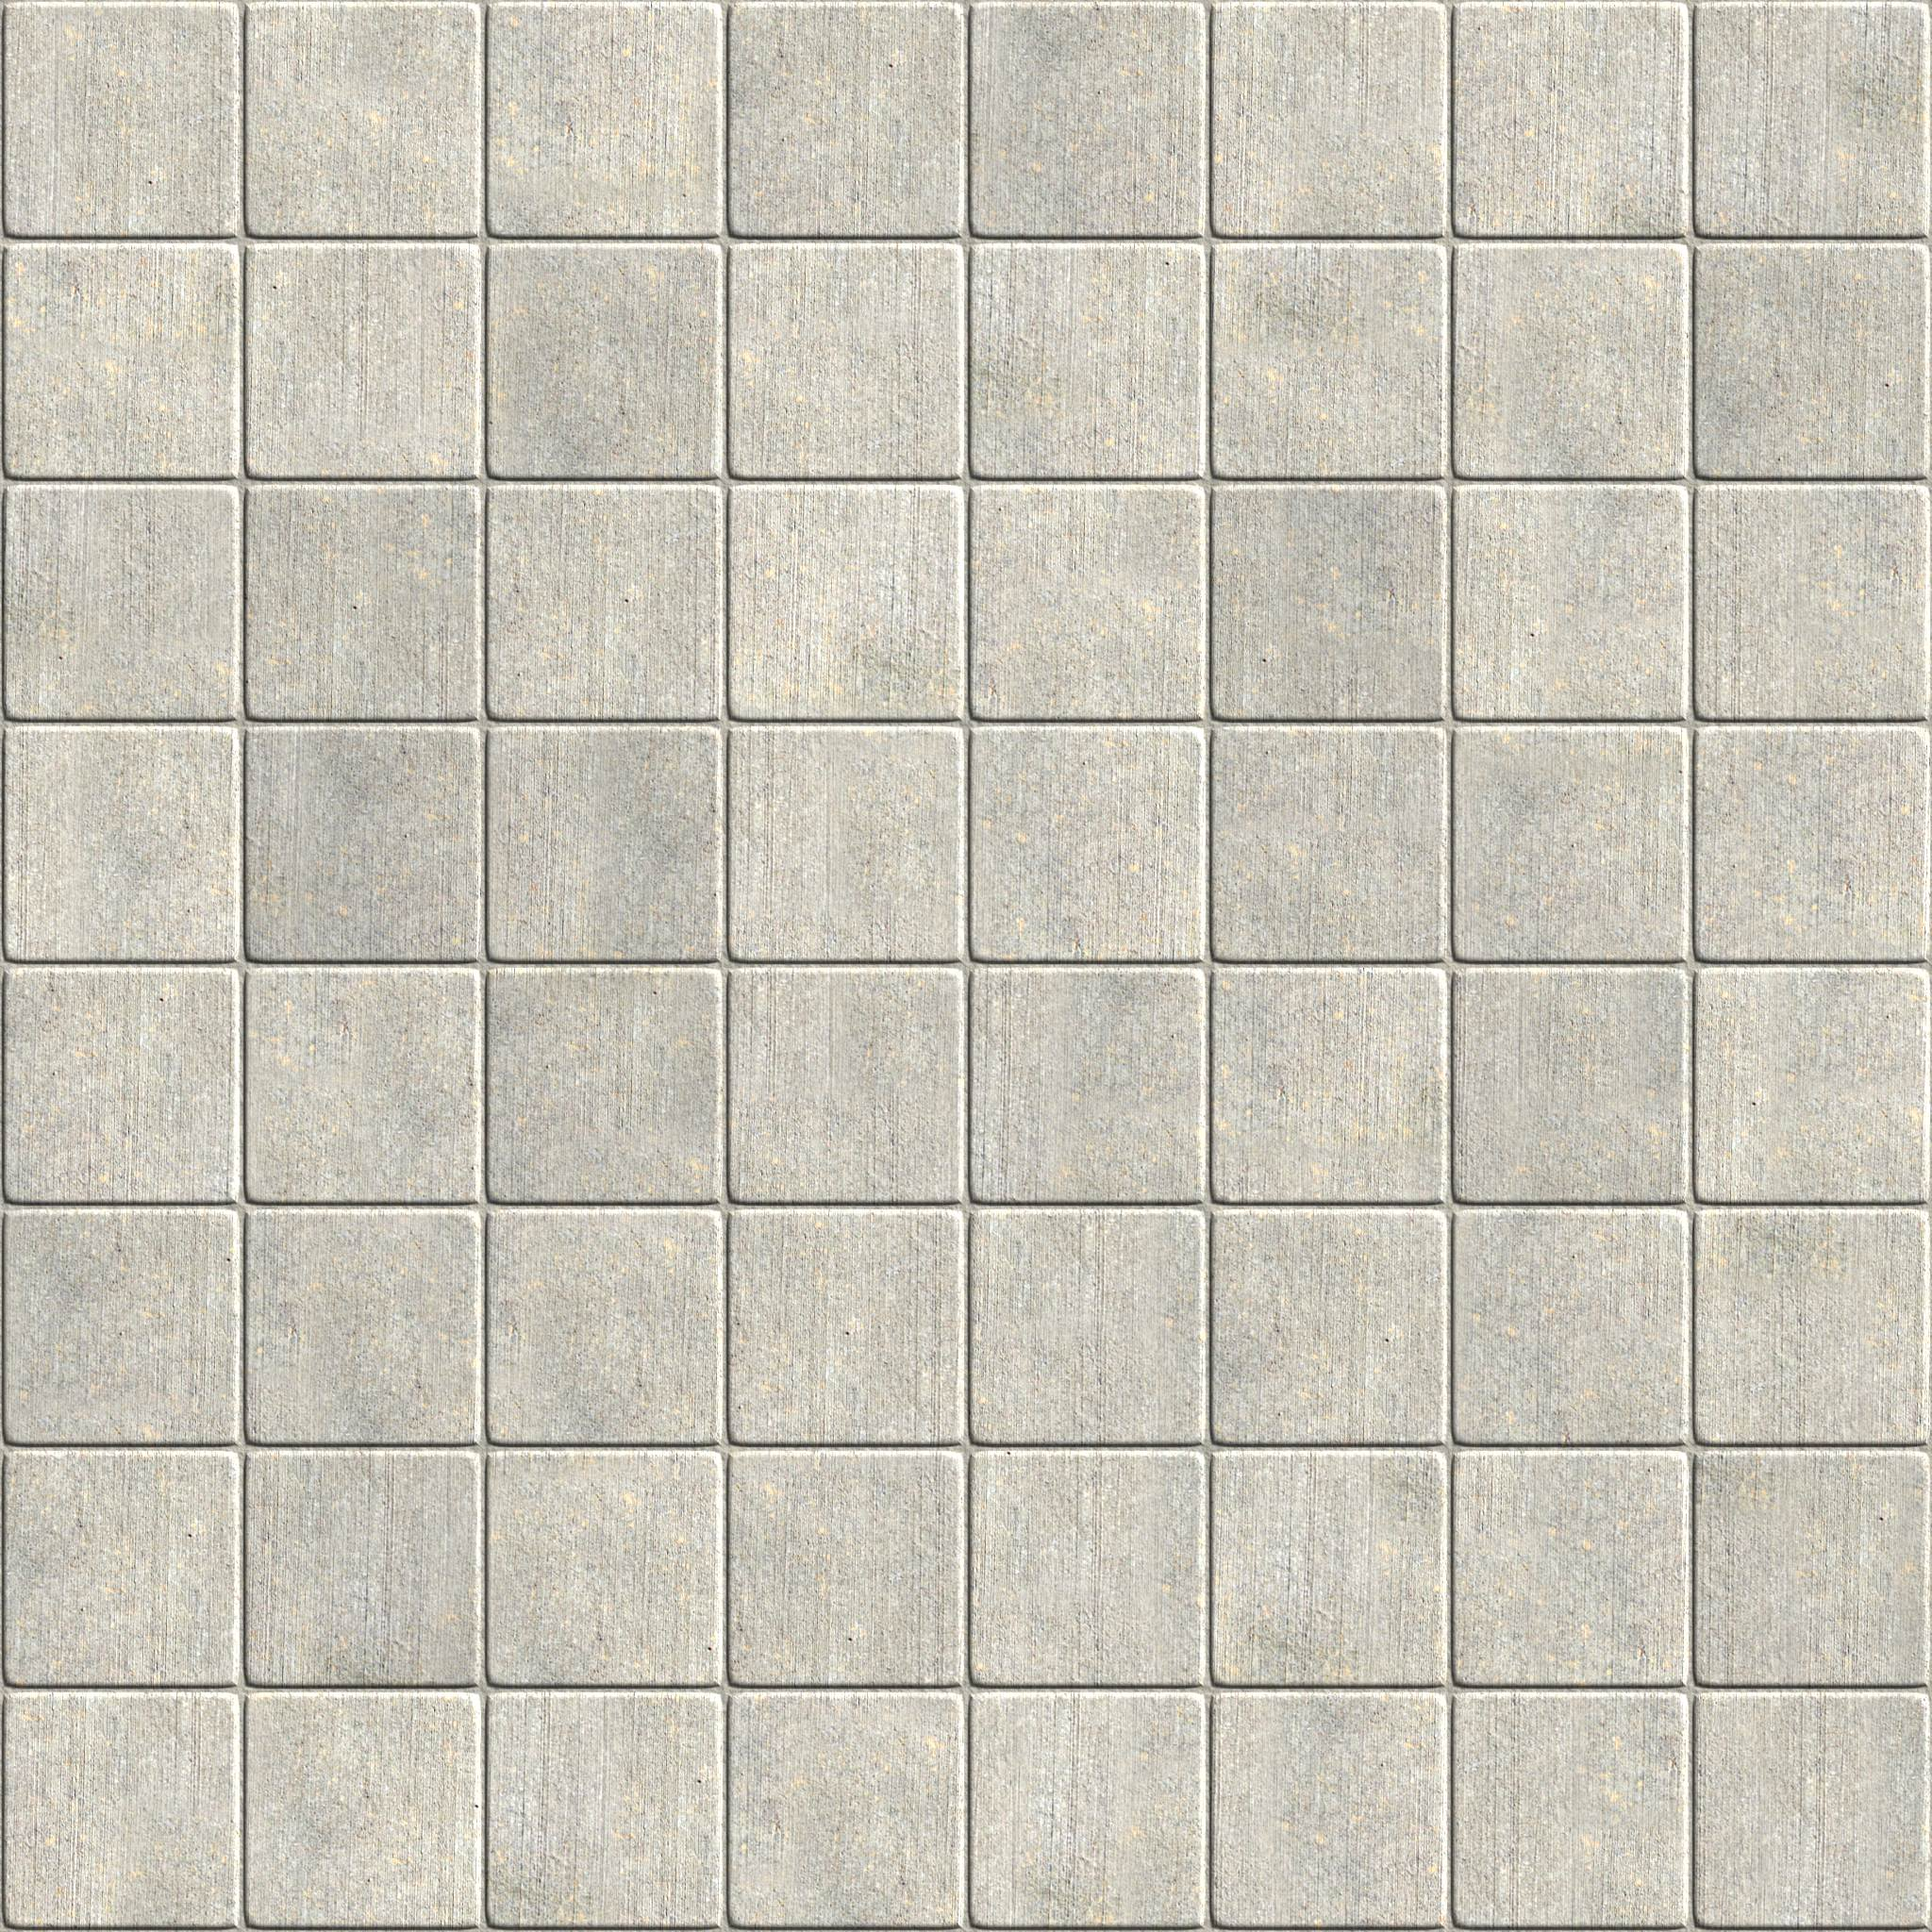 Pin White Tile Texture Seamless On Pinterest